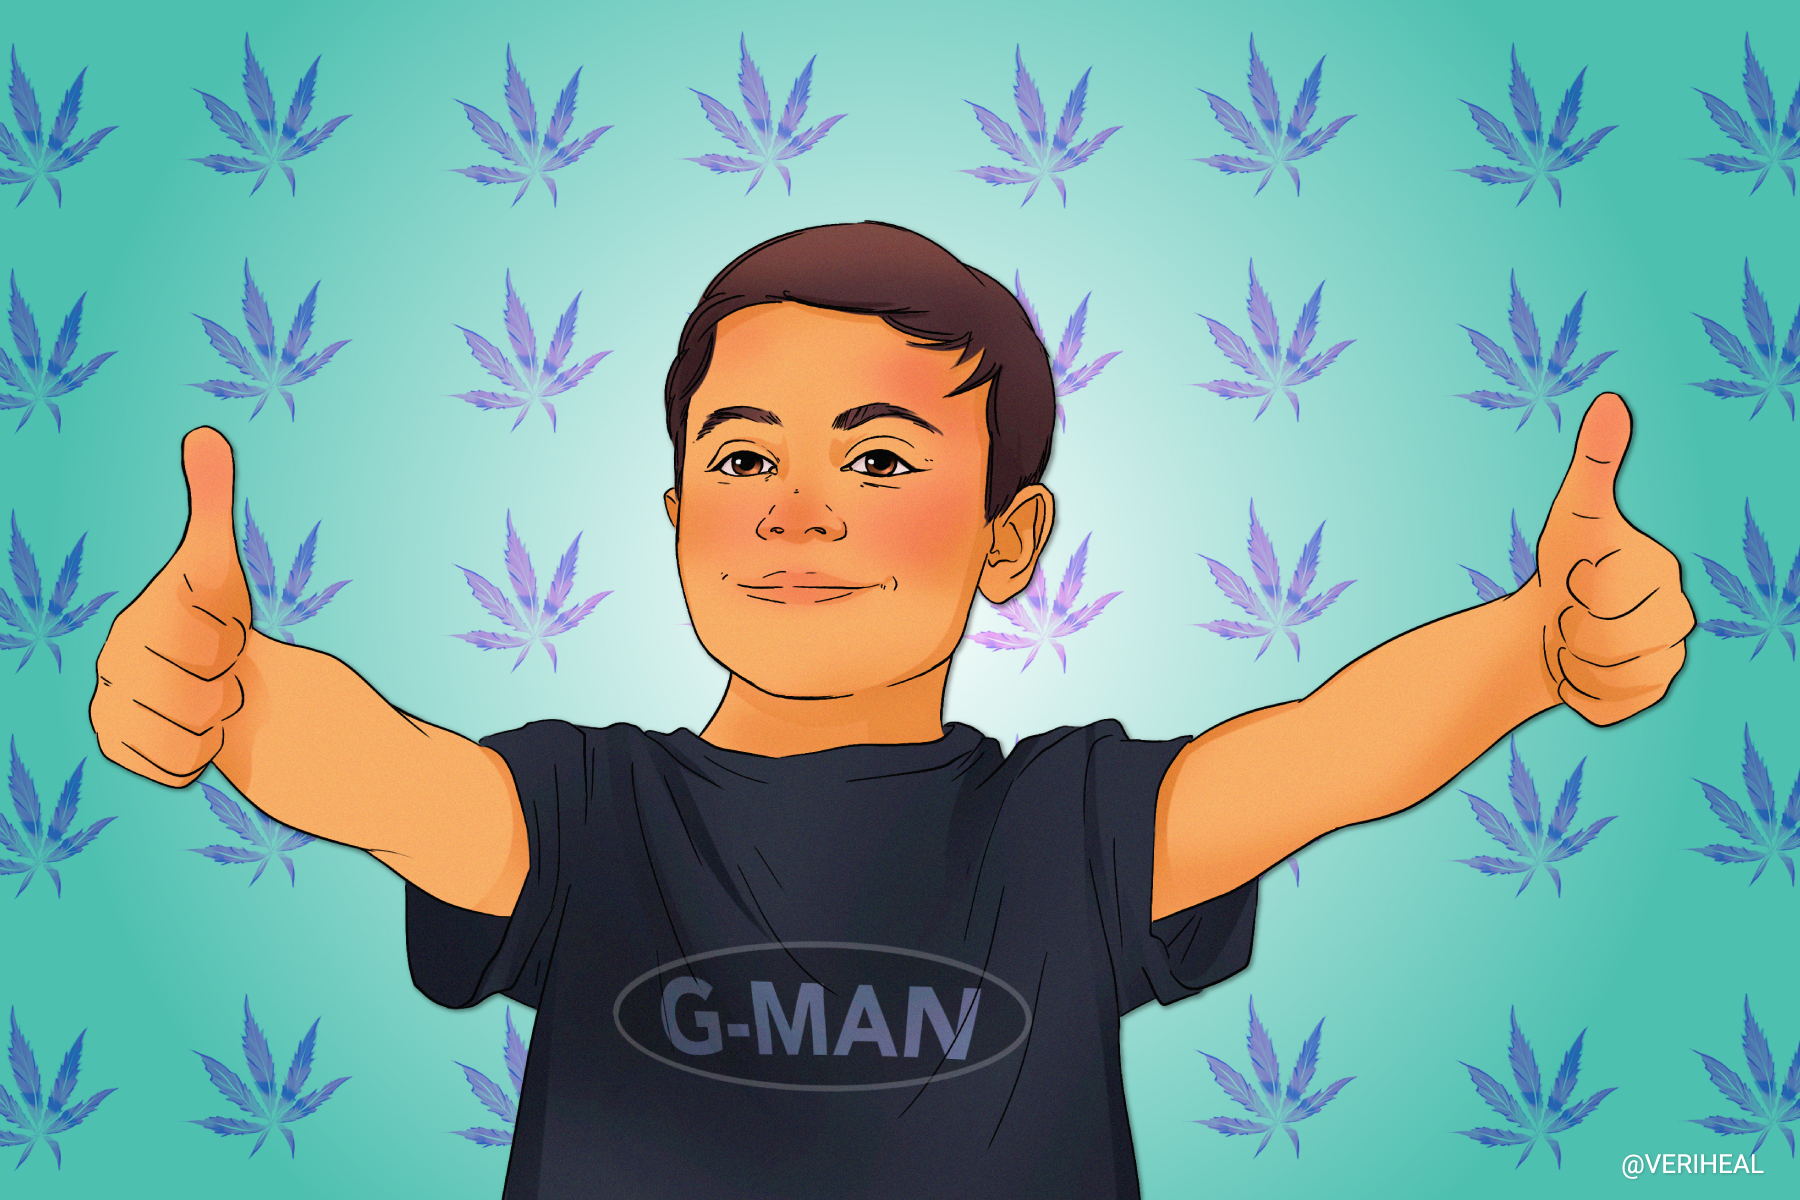 Cannabis Gives G-Man and Family a Dose of Hope